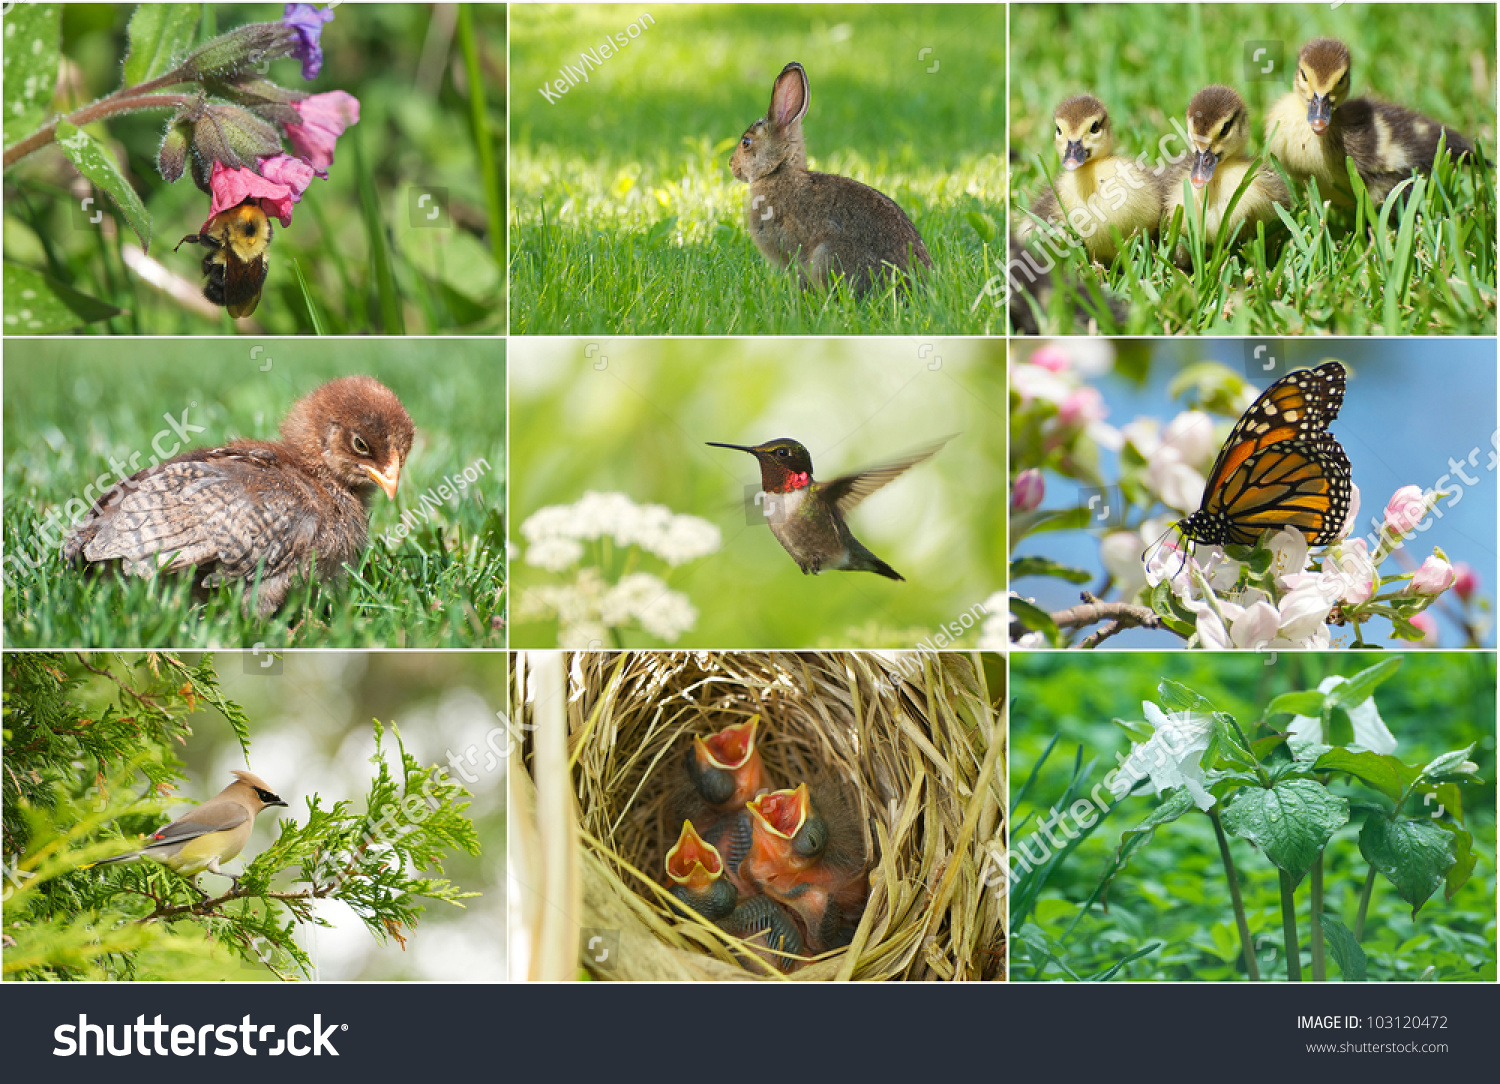 Image result for animals in Spring